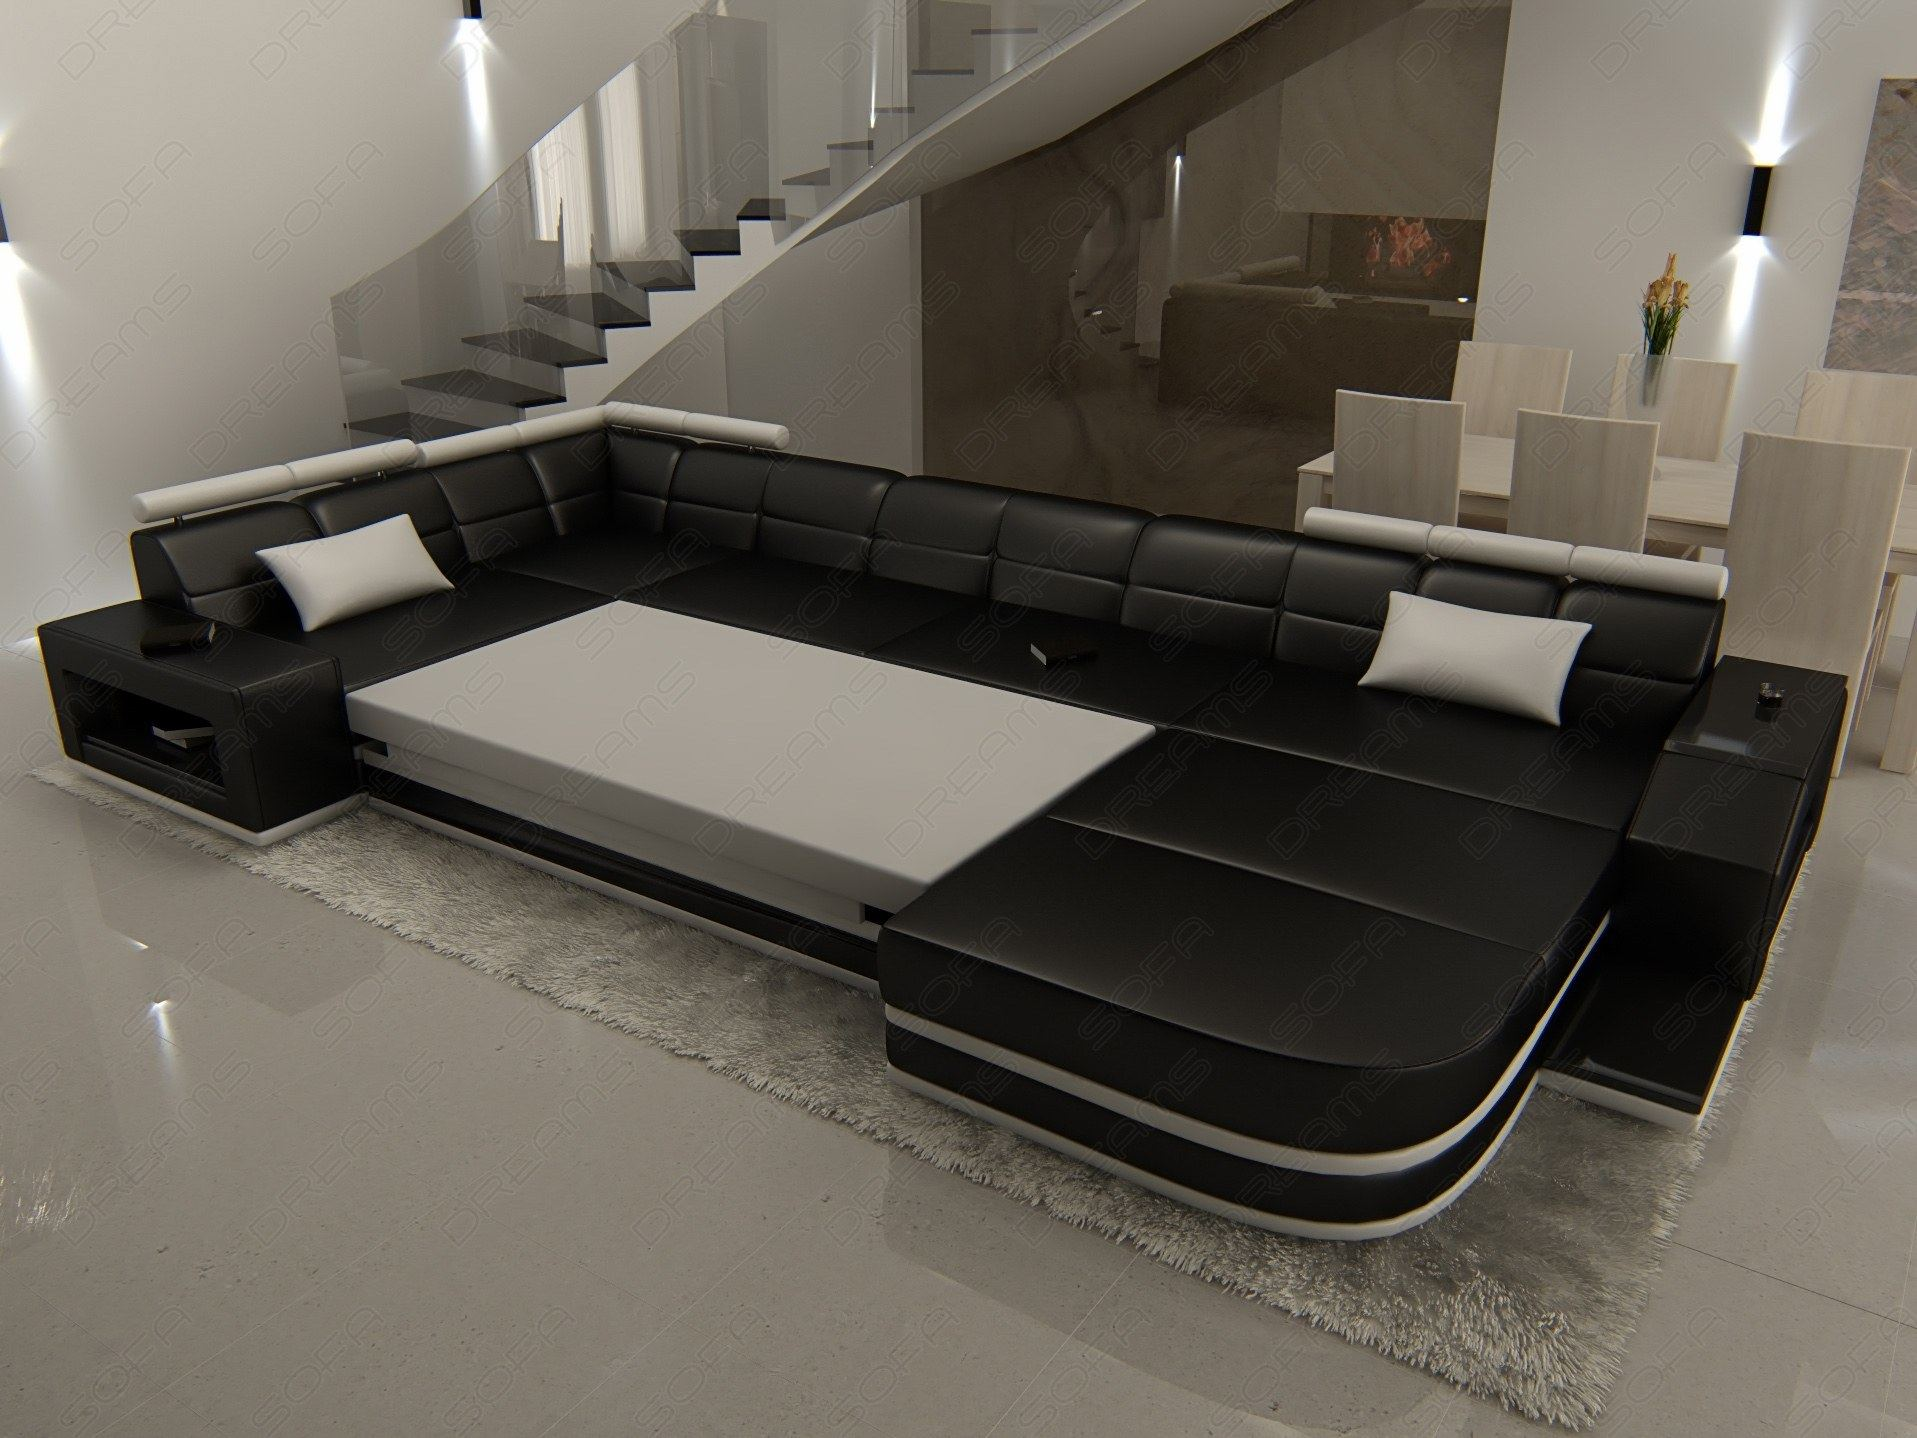 big sofa mit gallery of big sofa mit herrlich sofa mit hereo with big sofa mit beautiful area. Black Bedroom Furniture Sets. Home Design Ideas